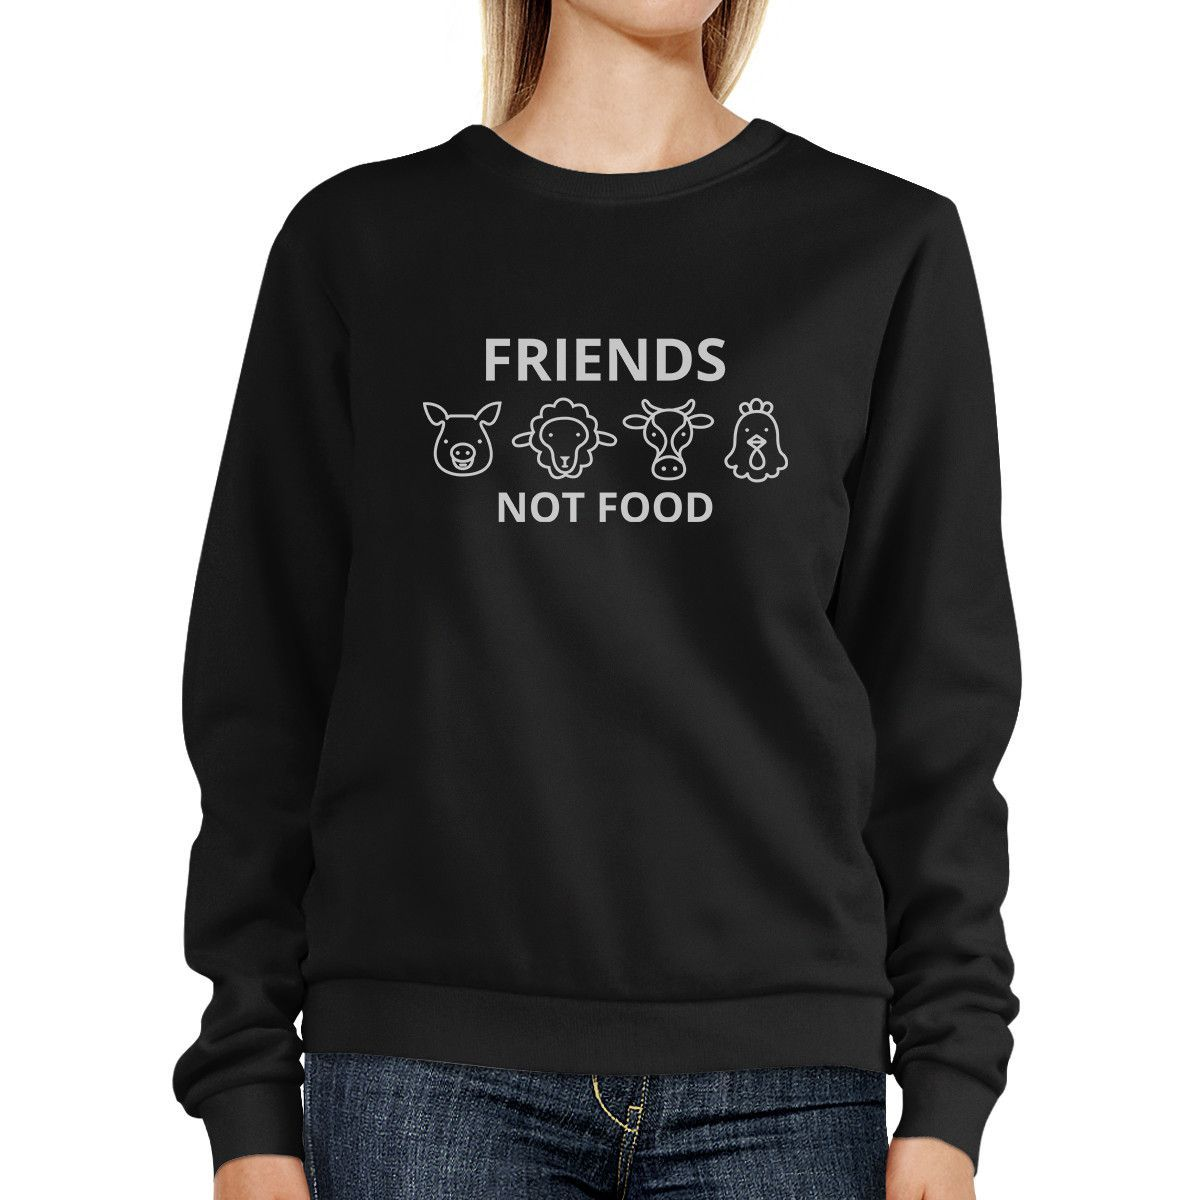 Friends Not Food Black Sweatshirt Cute Animal Graphic For Earth Day